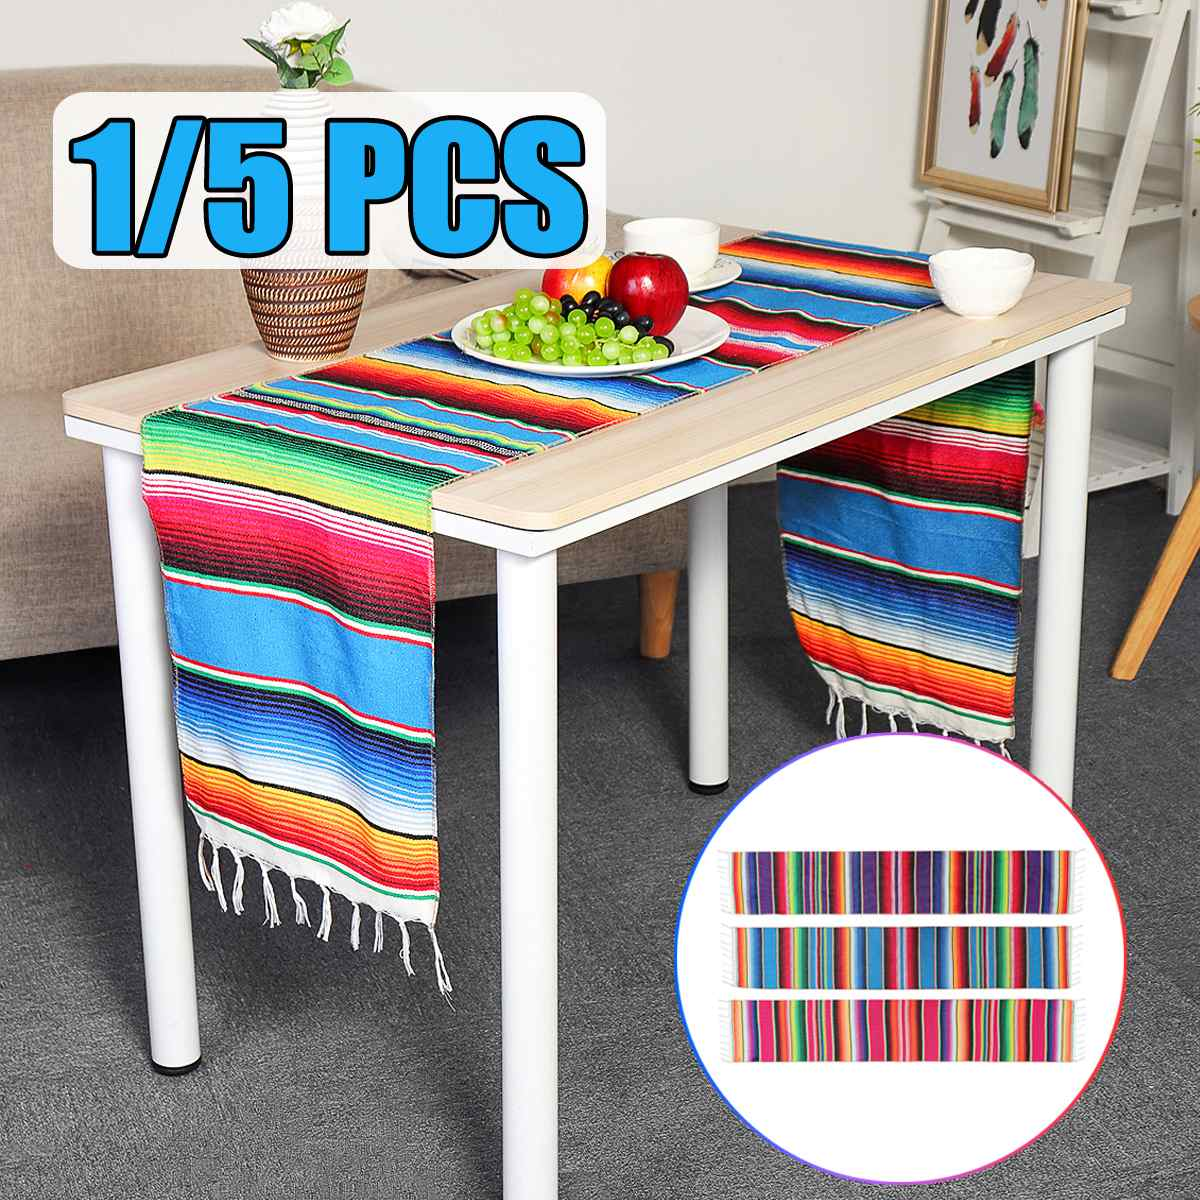 1/5PCS Cotton Mexican Party Serape Tablecloth Table Runner Rainbow DIY Wedding Party Table Runners Home Decor 3 Colors 213X35cm1/5PCS Cotton Mexican Party Serape Tablecloth Table Runner Rainbow DIY Wedding Party Table Runners Home Decor 3 Colors 213X35cm